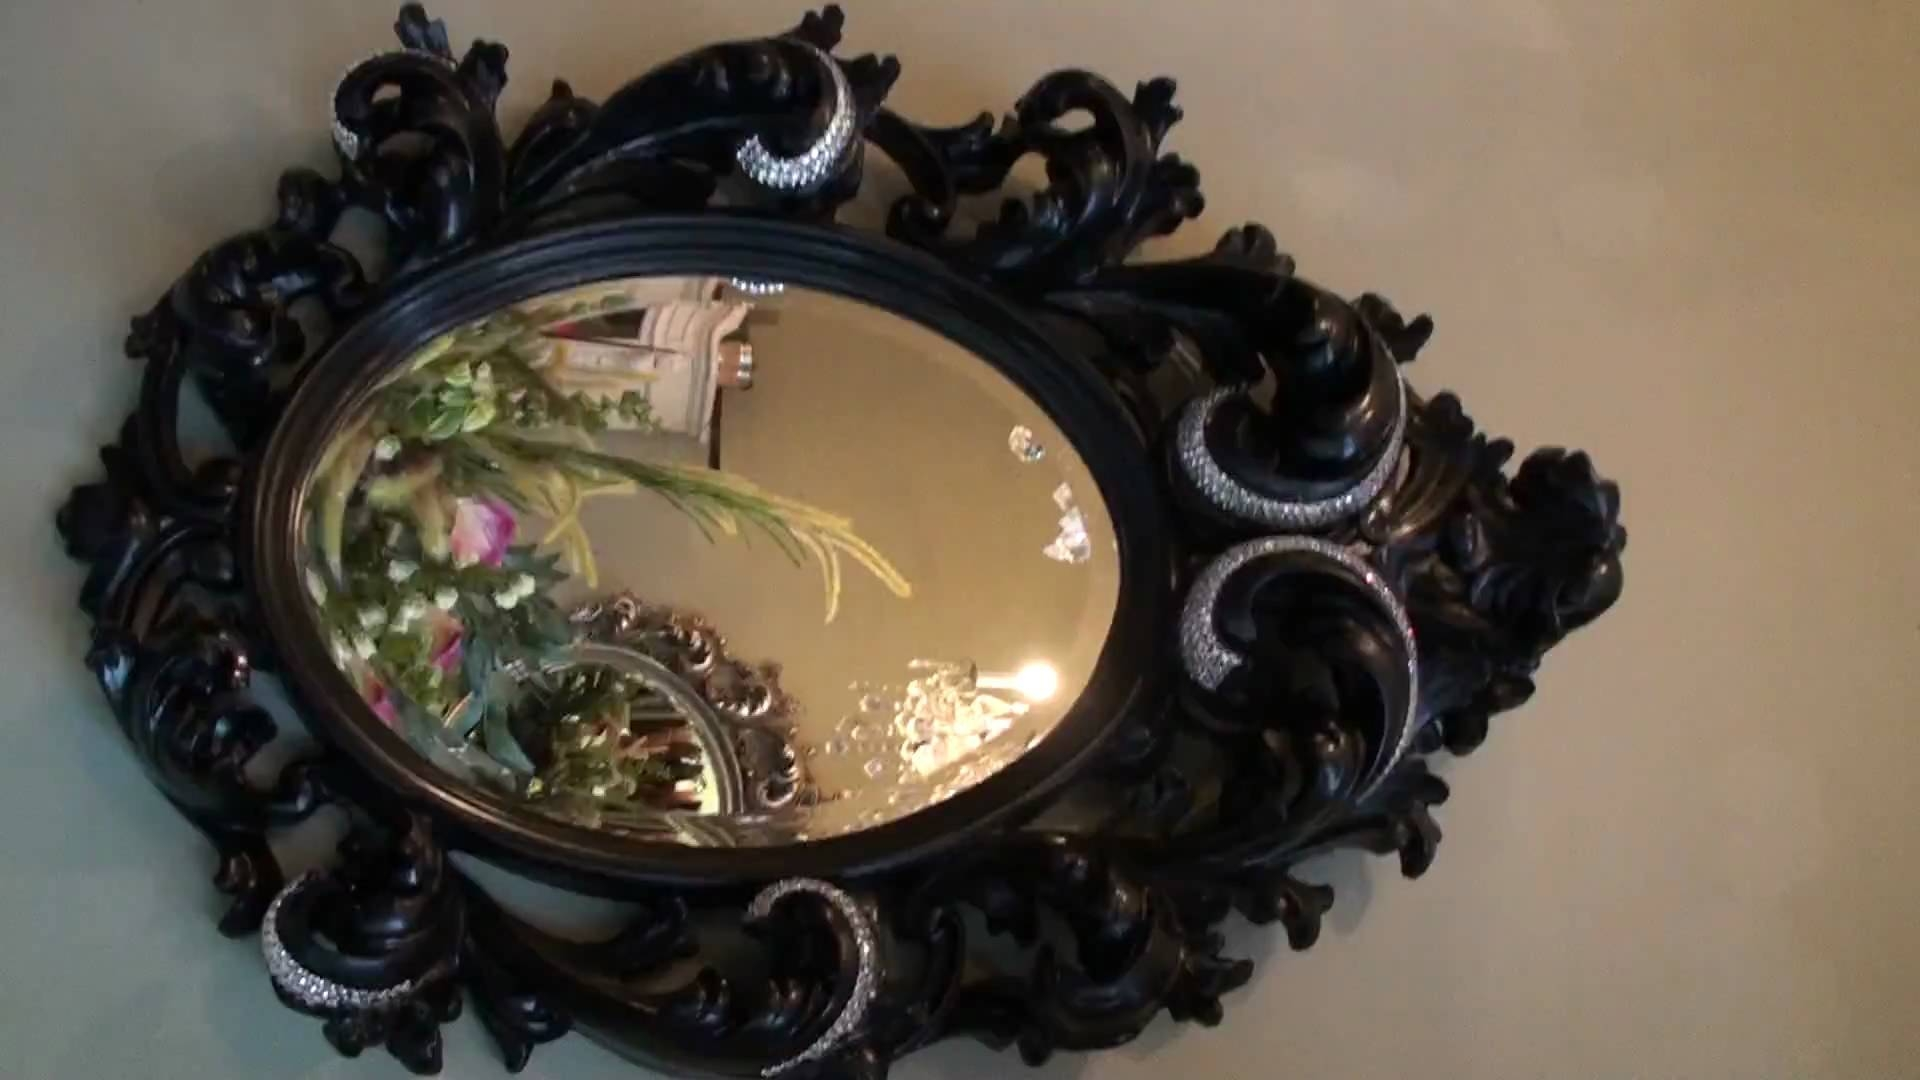 Diamond Encrusted Mirror Most Expensive In The World - Youtube intended for Expensive Mirrors (Image 20 of 25)